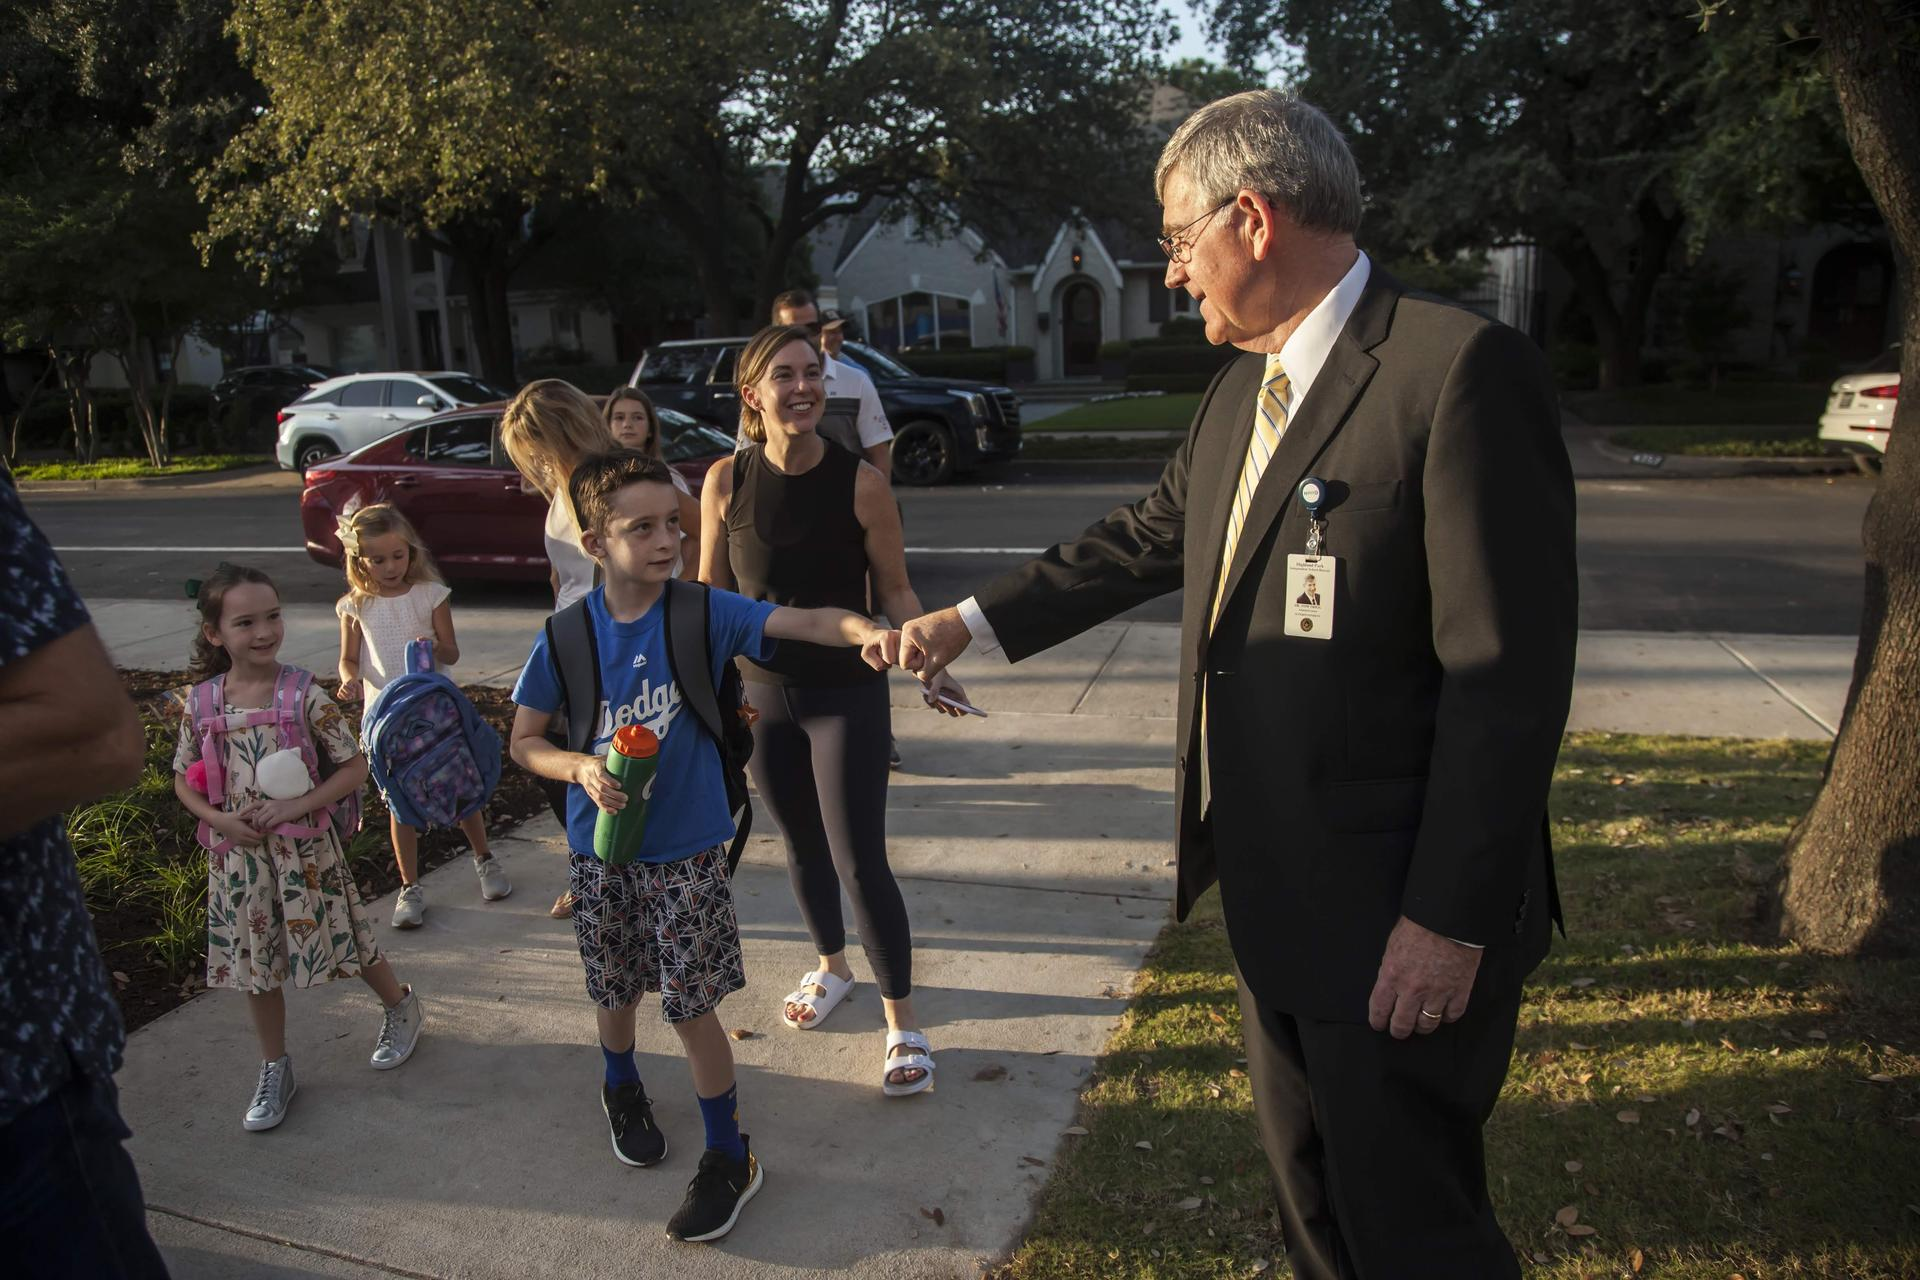 Dr. Trigg welcoming students with a fist bump on the first day of school.